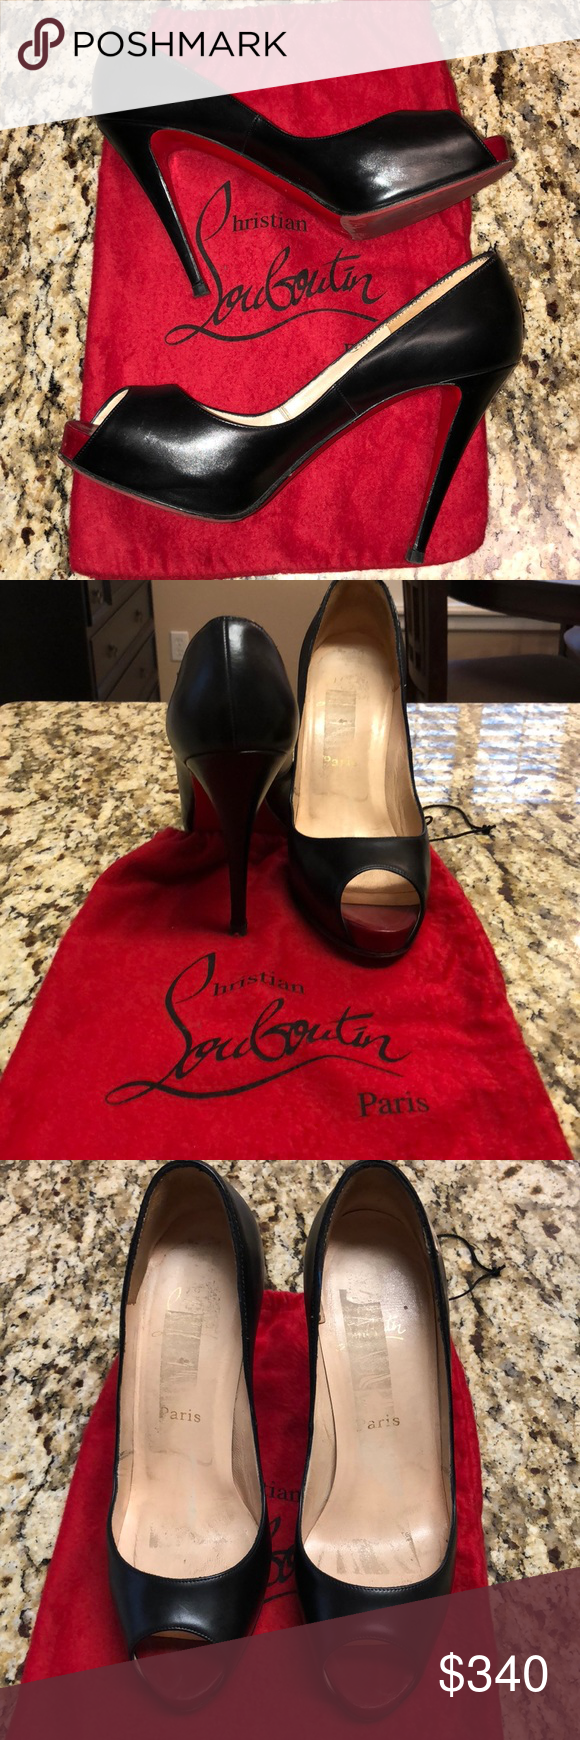 1dcb9961864b 100% Authentic Christian Louboutin Very Prive Heel 100% authentic Christian  Louboutin Very Prive 120